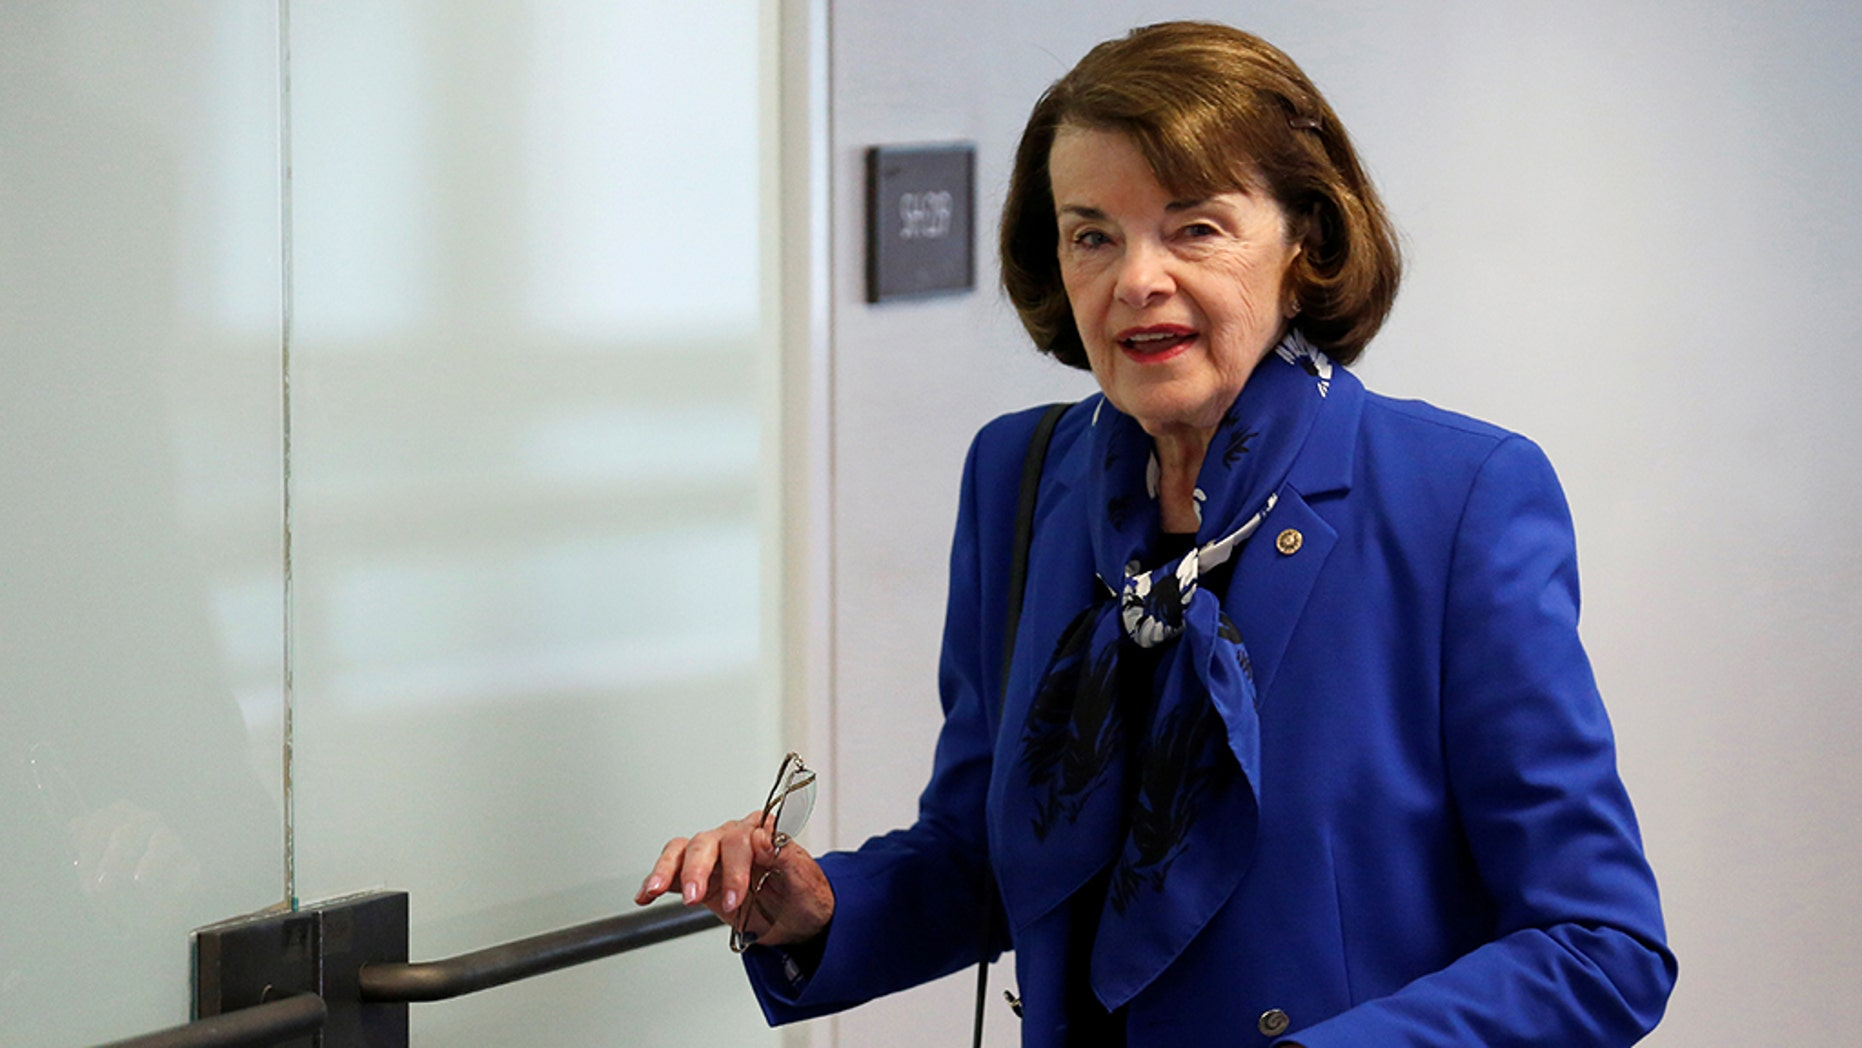 Sen. Dianne Feinstein, D-Calif., on Capitol Hill back in May.